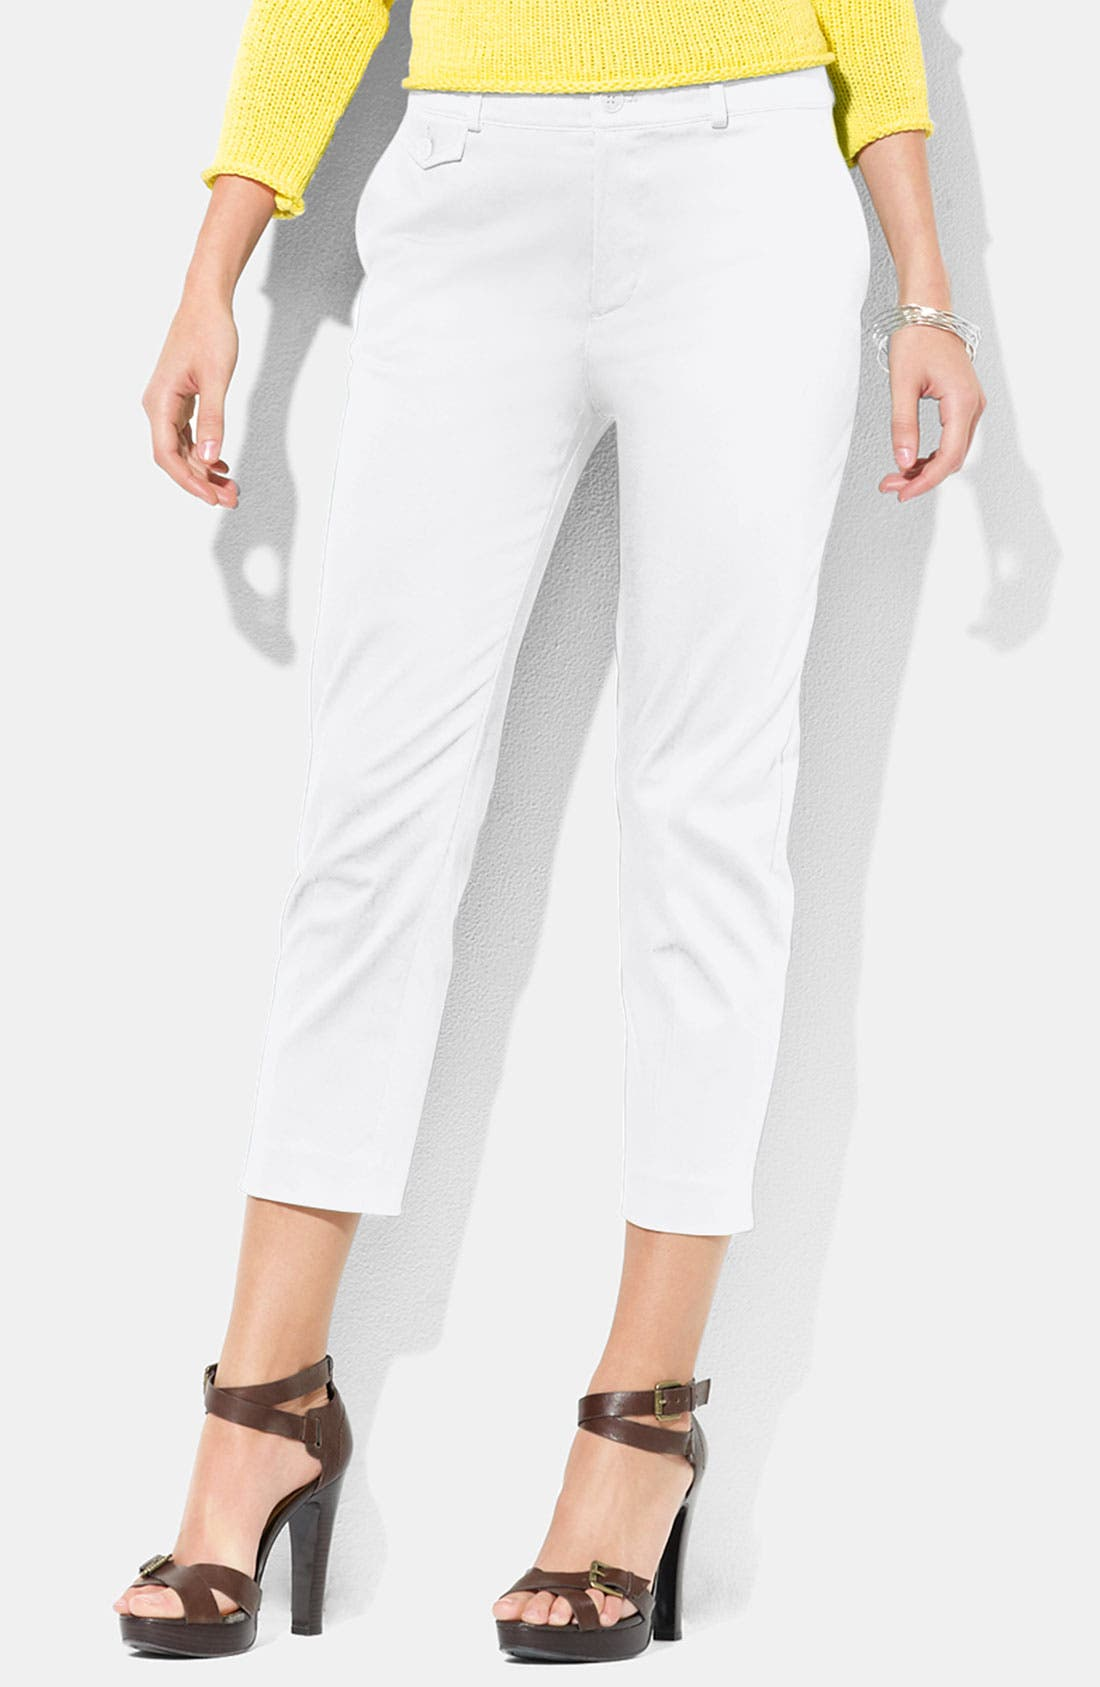 Alternate Image 1 Selected - Lauren Ralph Lauren 'Jodie' Slim Fit Crop Pants (Petite)